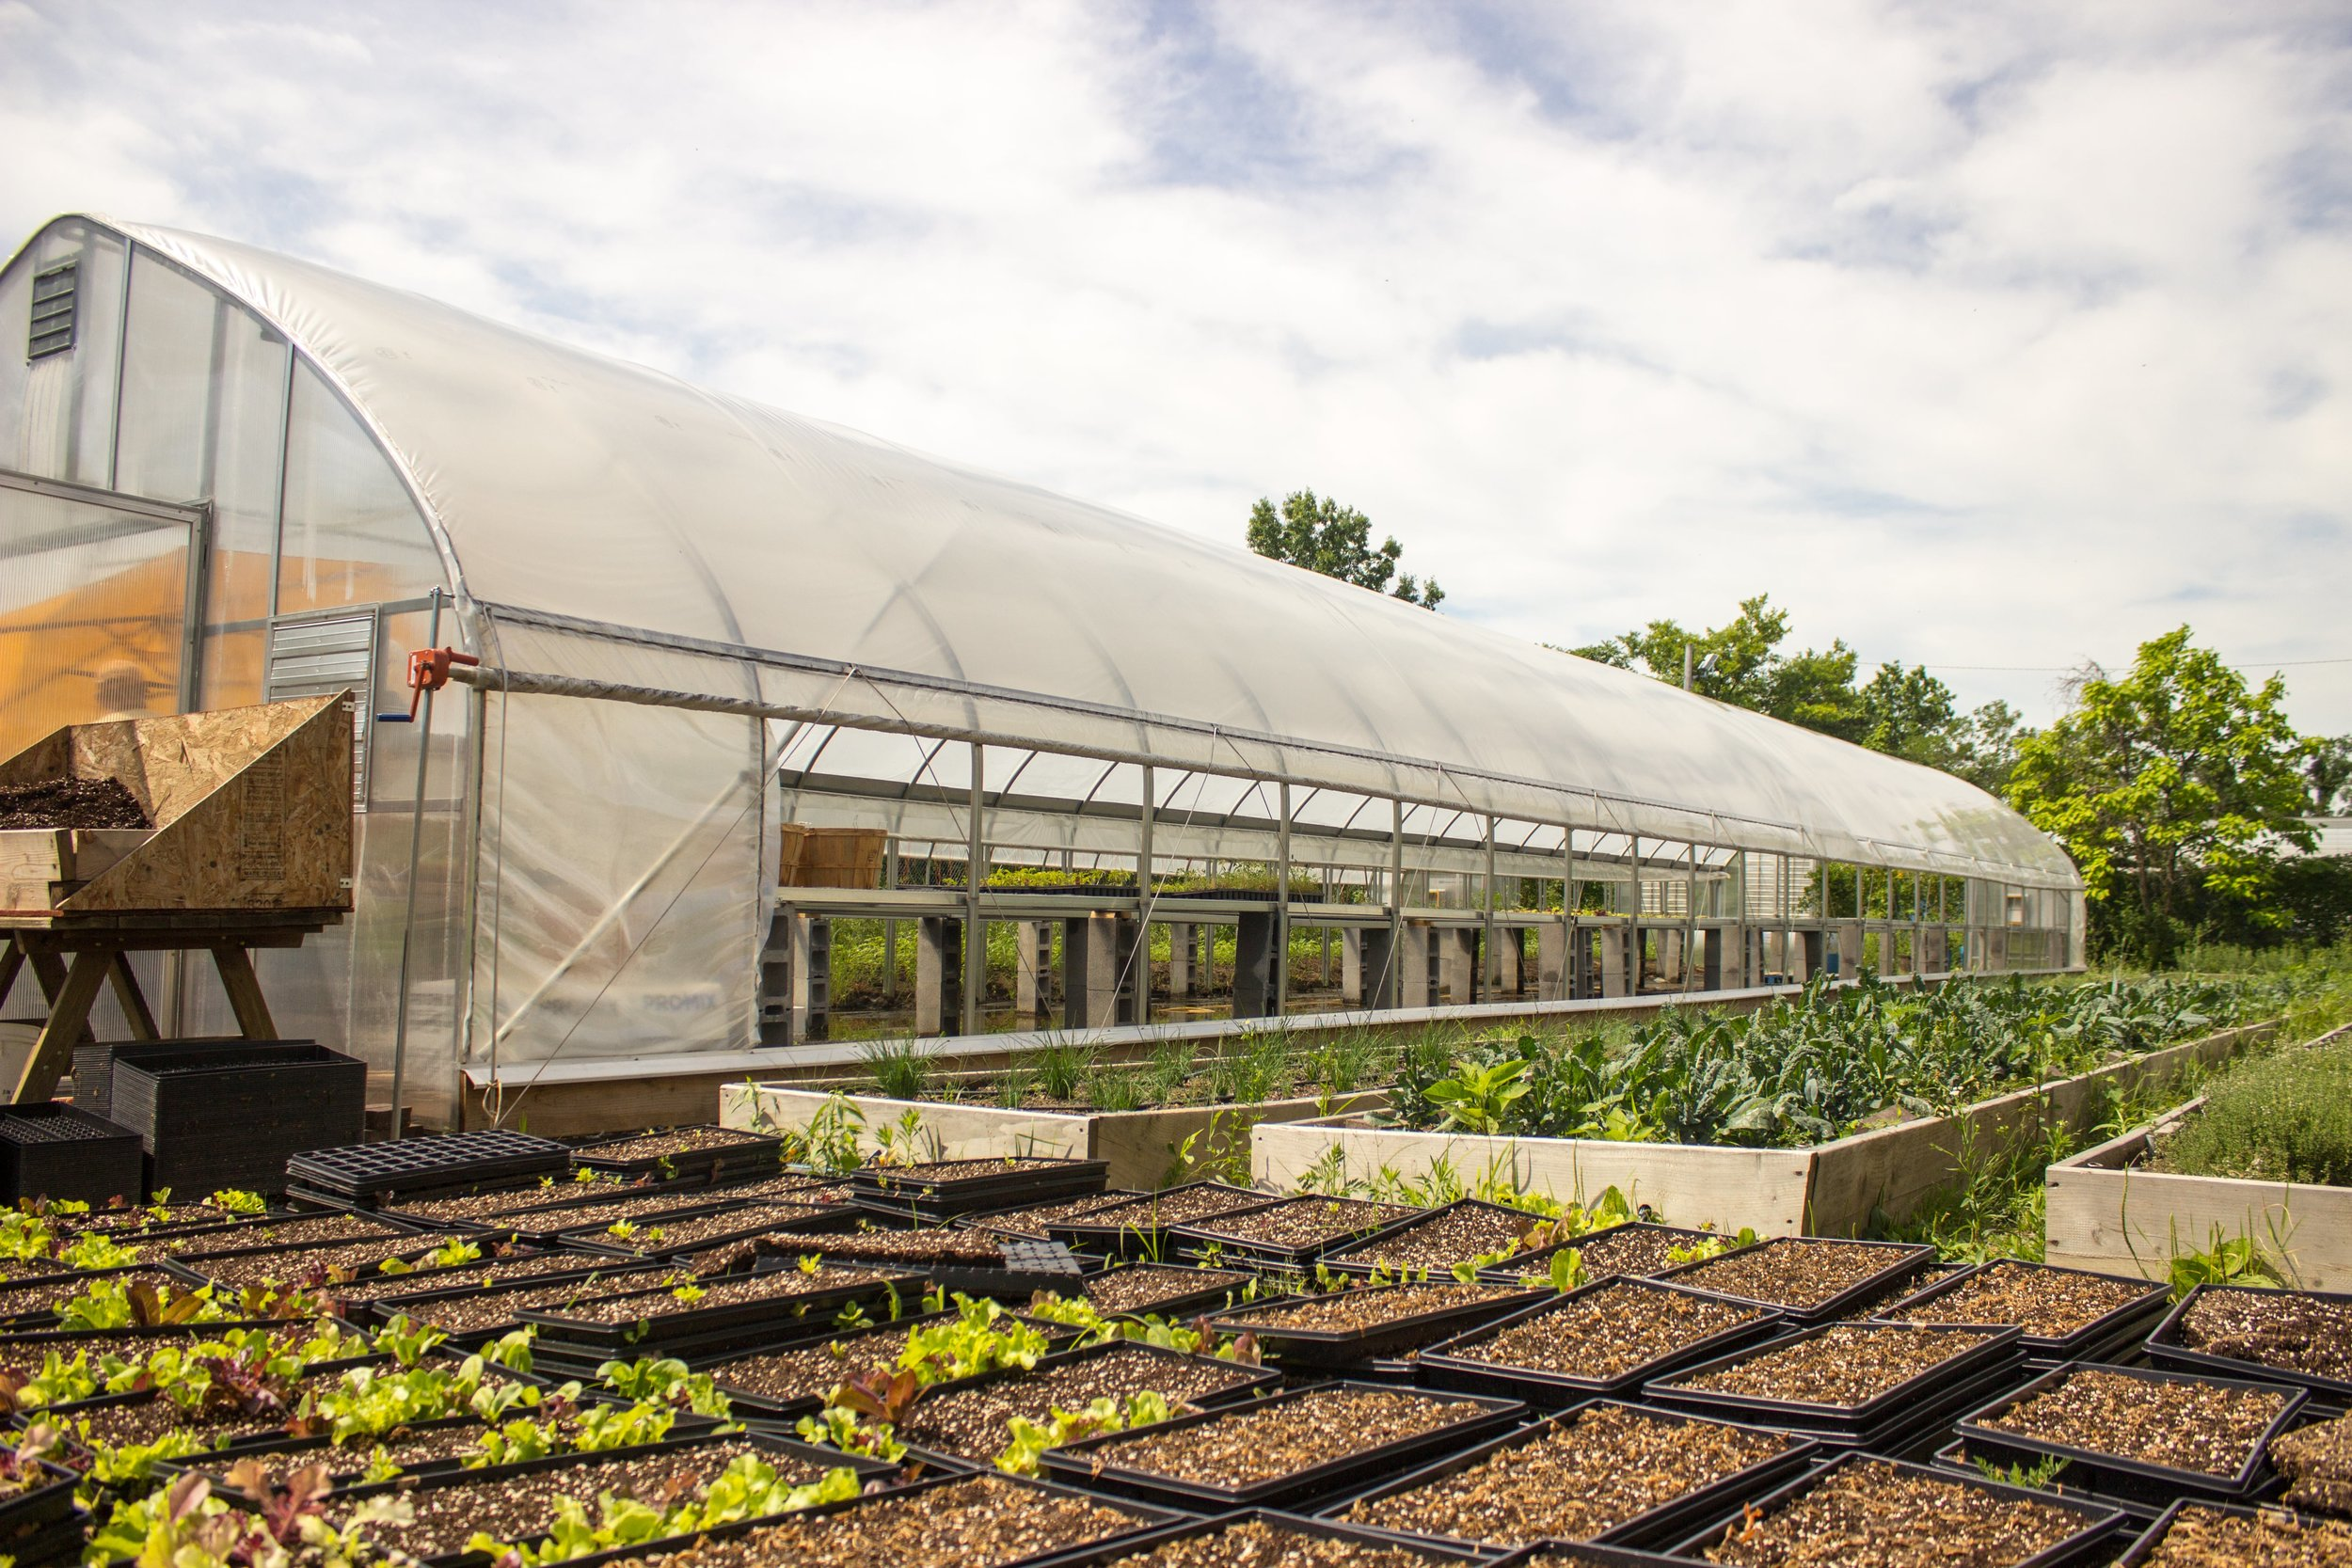 Greenhouse picture.jpg